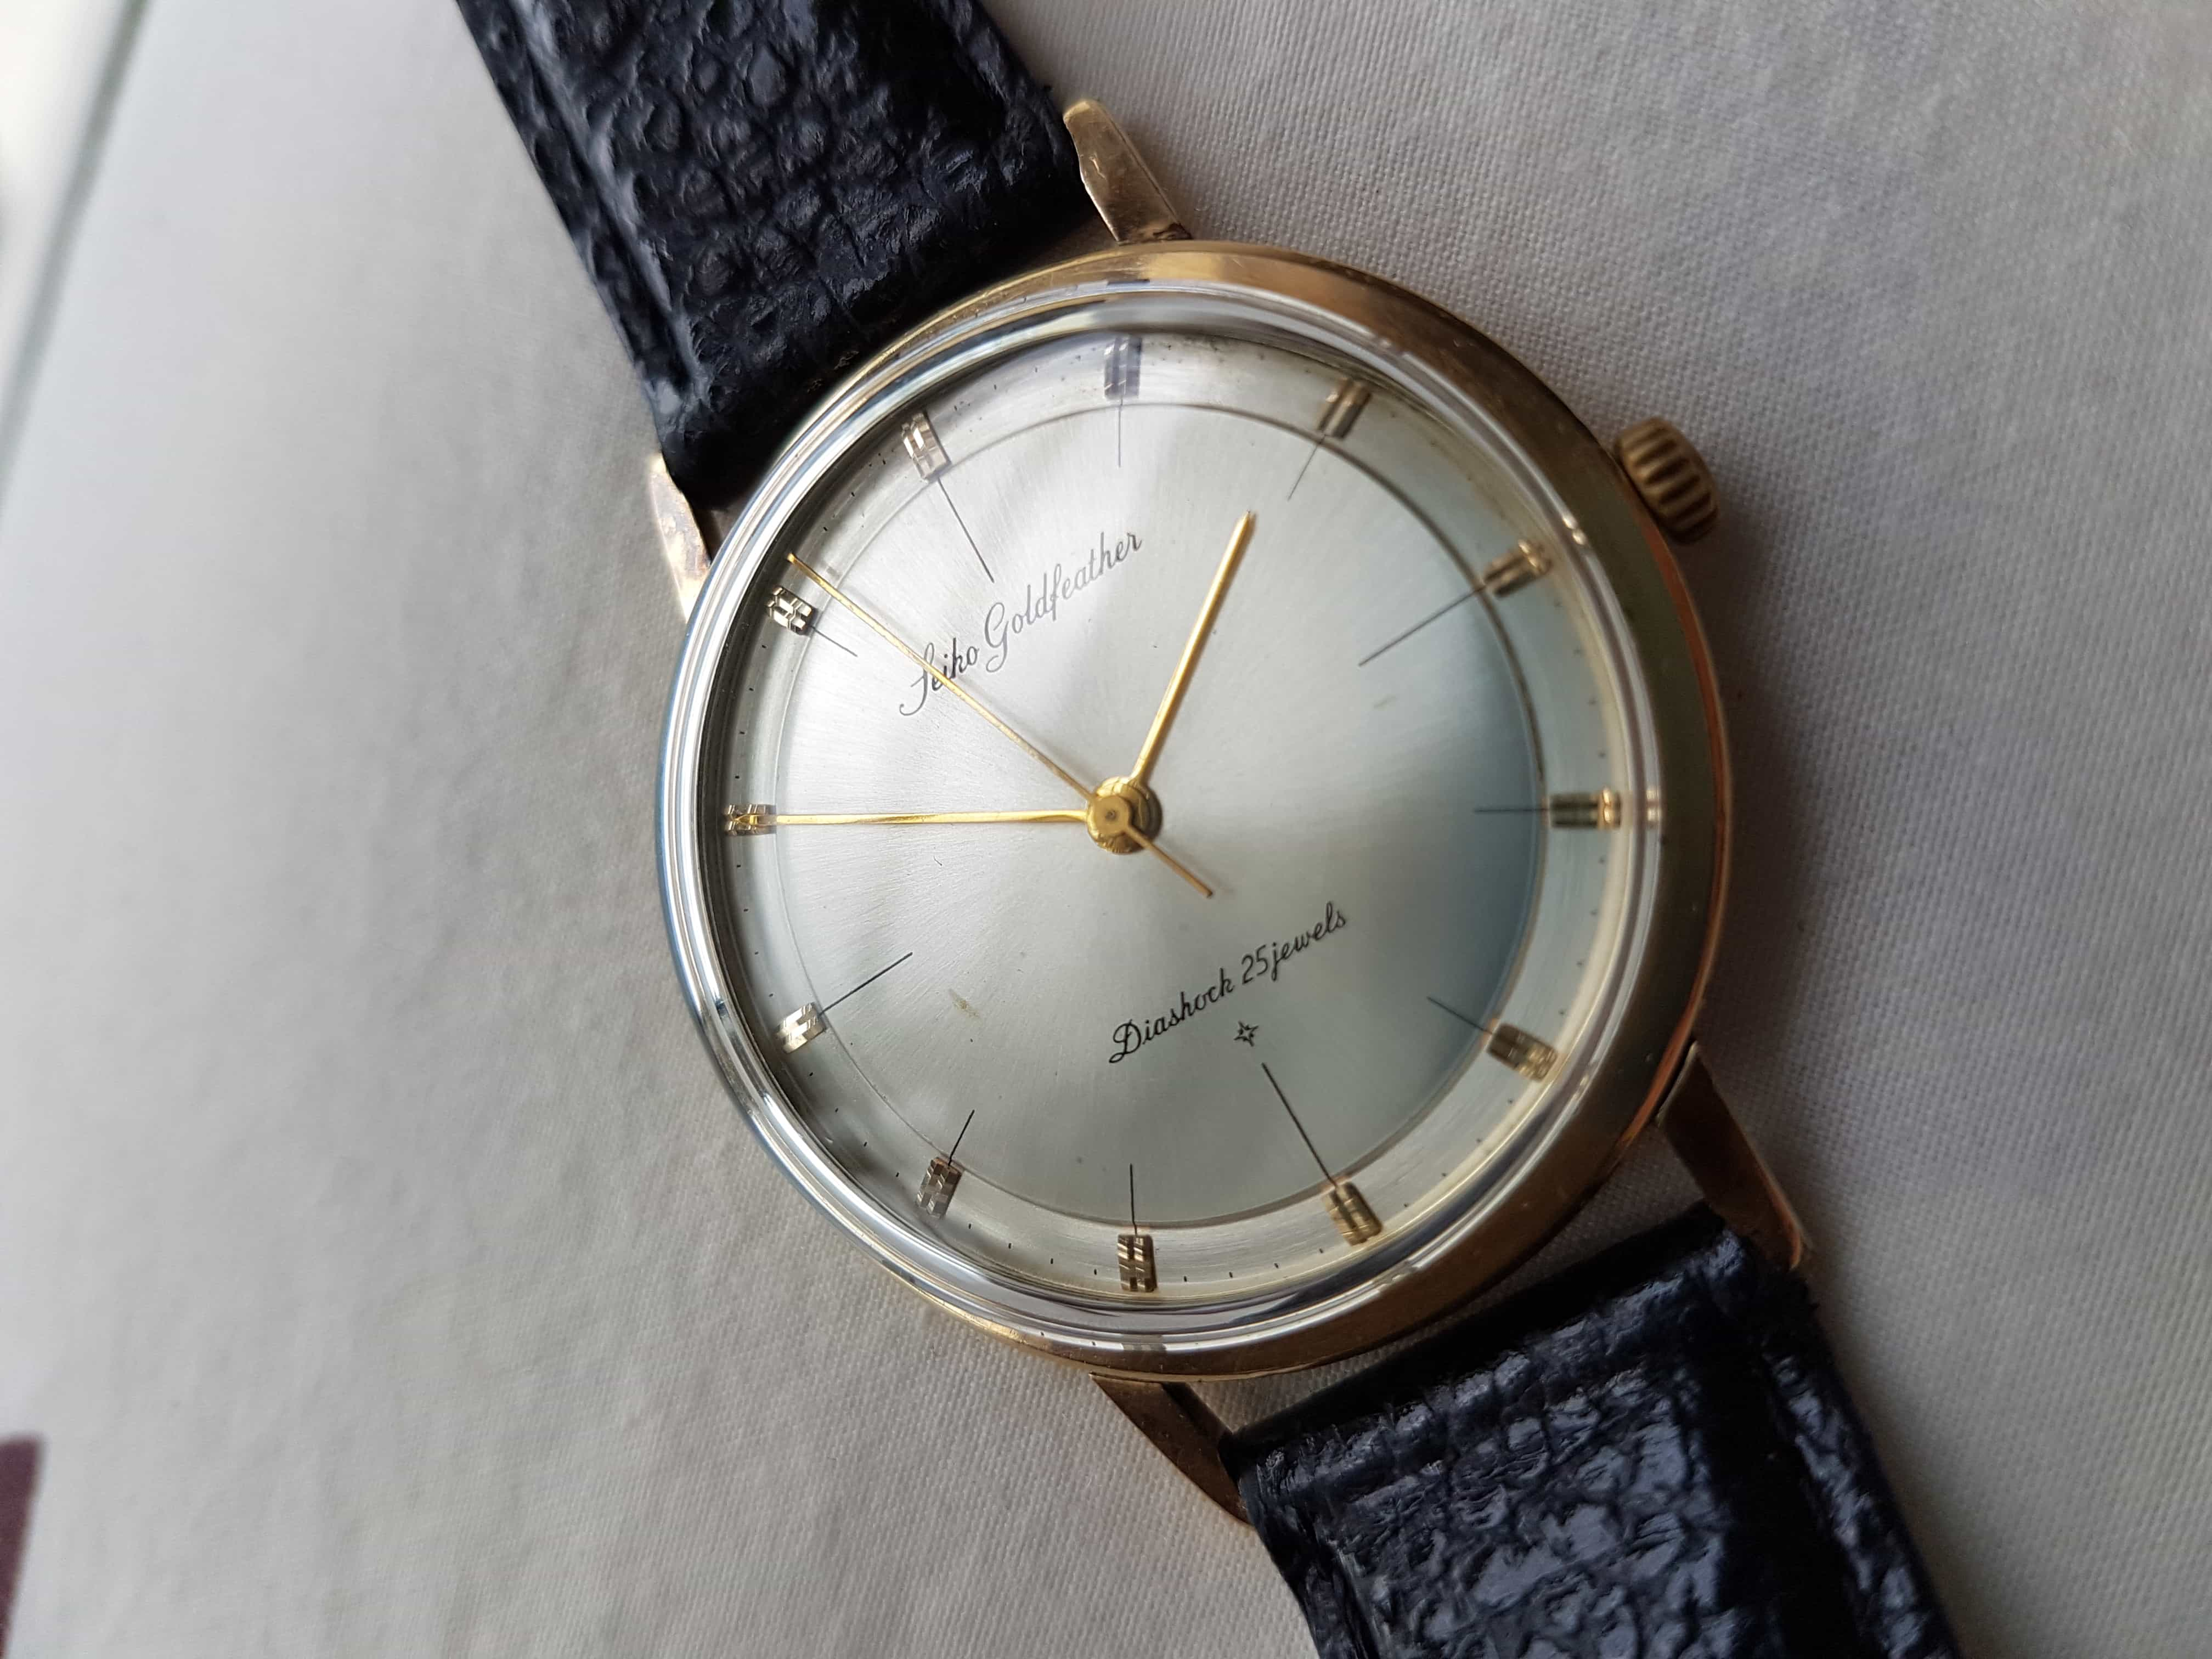 Credence Vintage Affordable Vintage The Ultra Thin 60s Seiko Goldfeather Worn